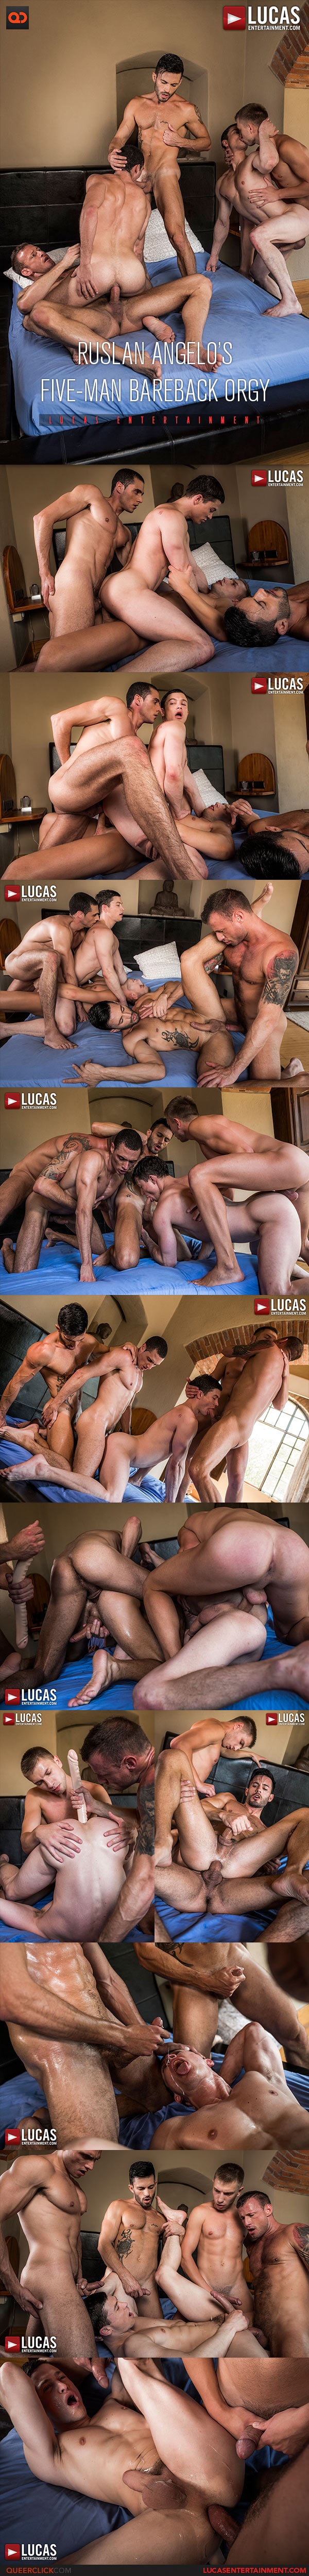 Lucas Entertainment: Ruslan Angelo's Five Man Bareback Orgy